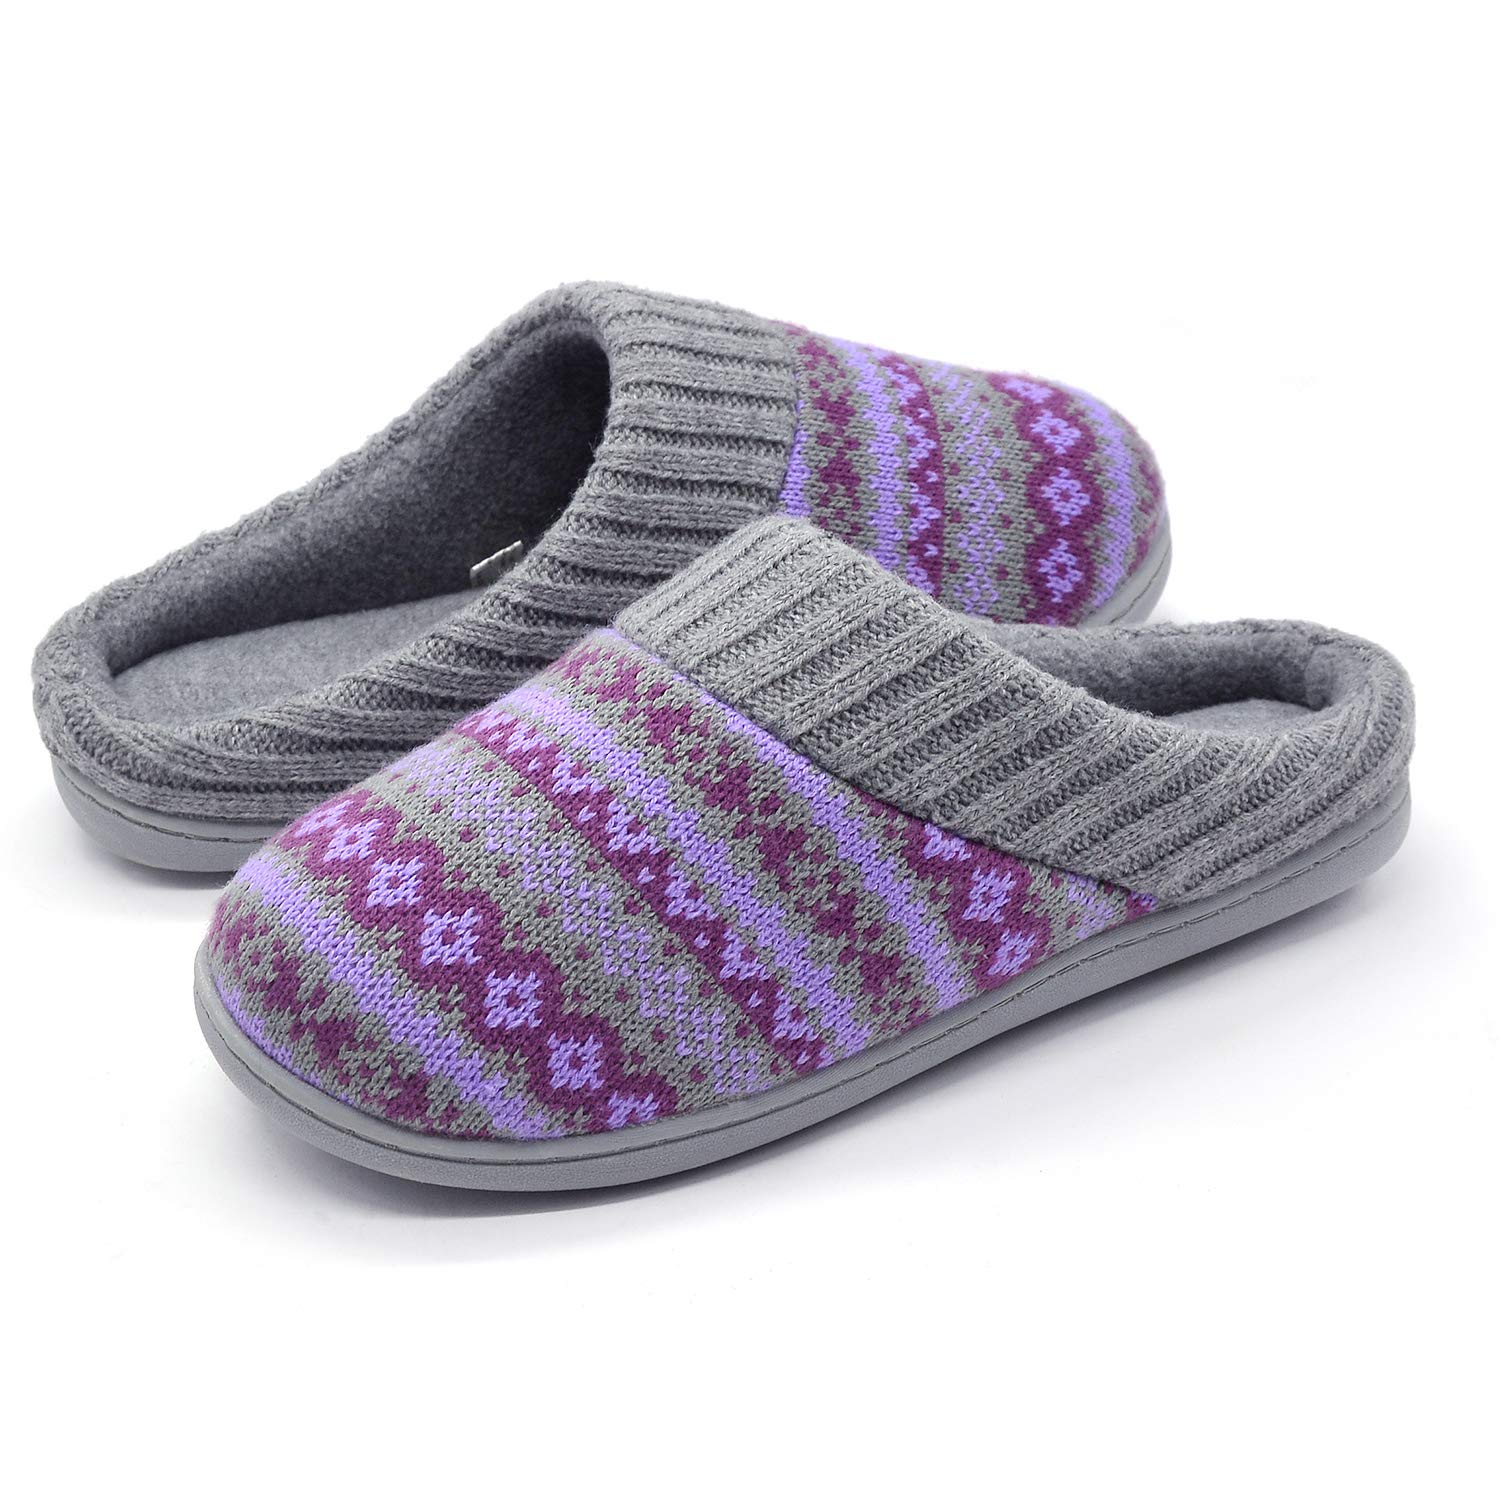 4fdd963e24e RockDove Women's Fair Isle Sweater Knit Memory Foam Slipper